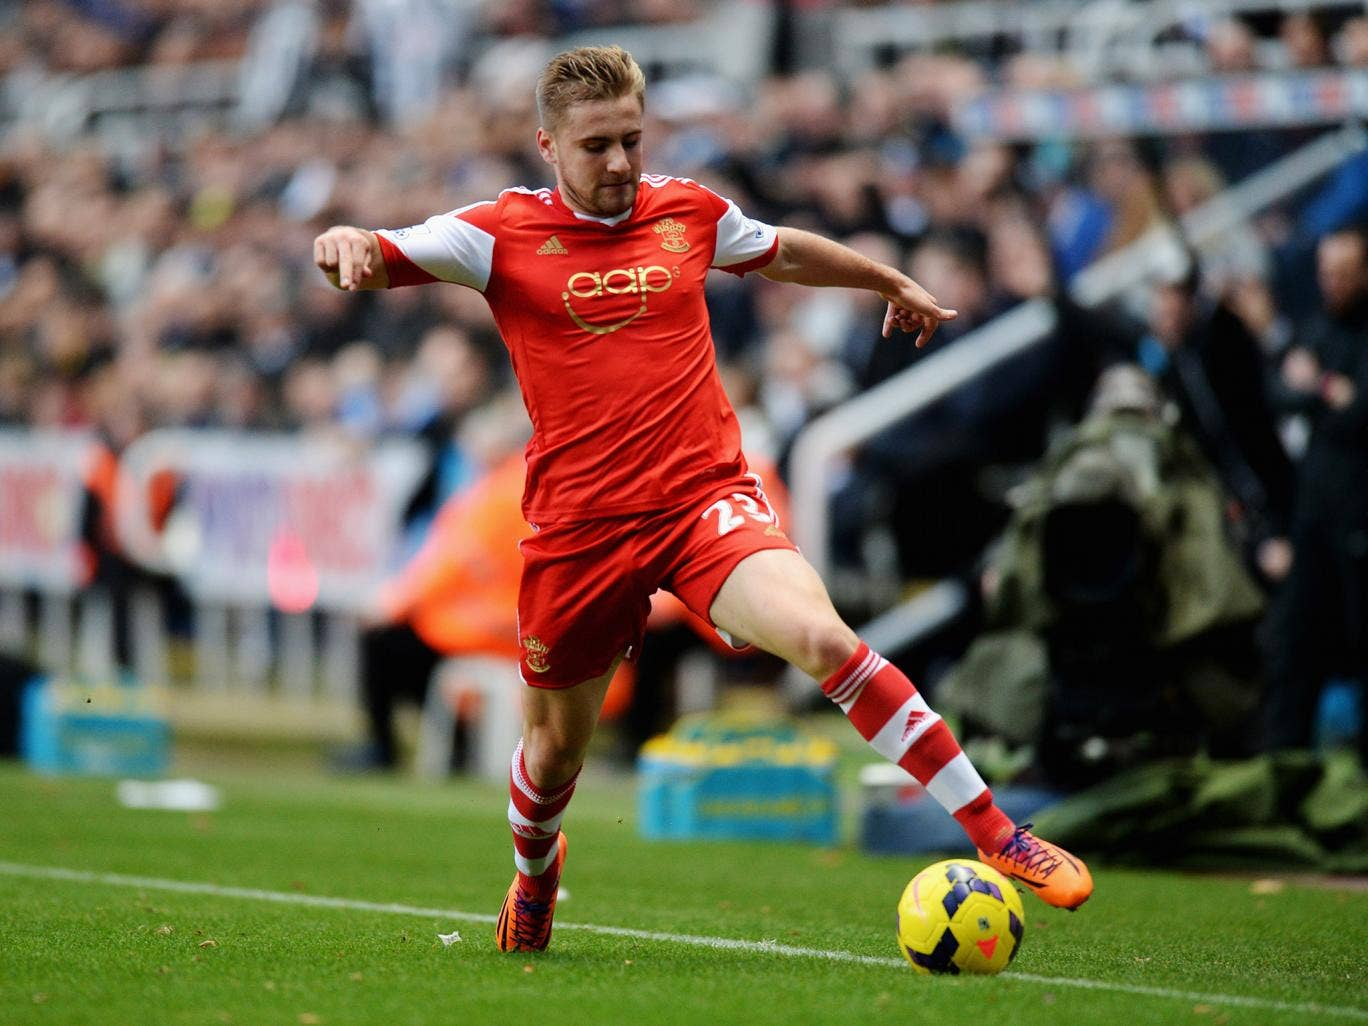 Southampton's highly rated left-back Luke Shaw